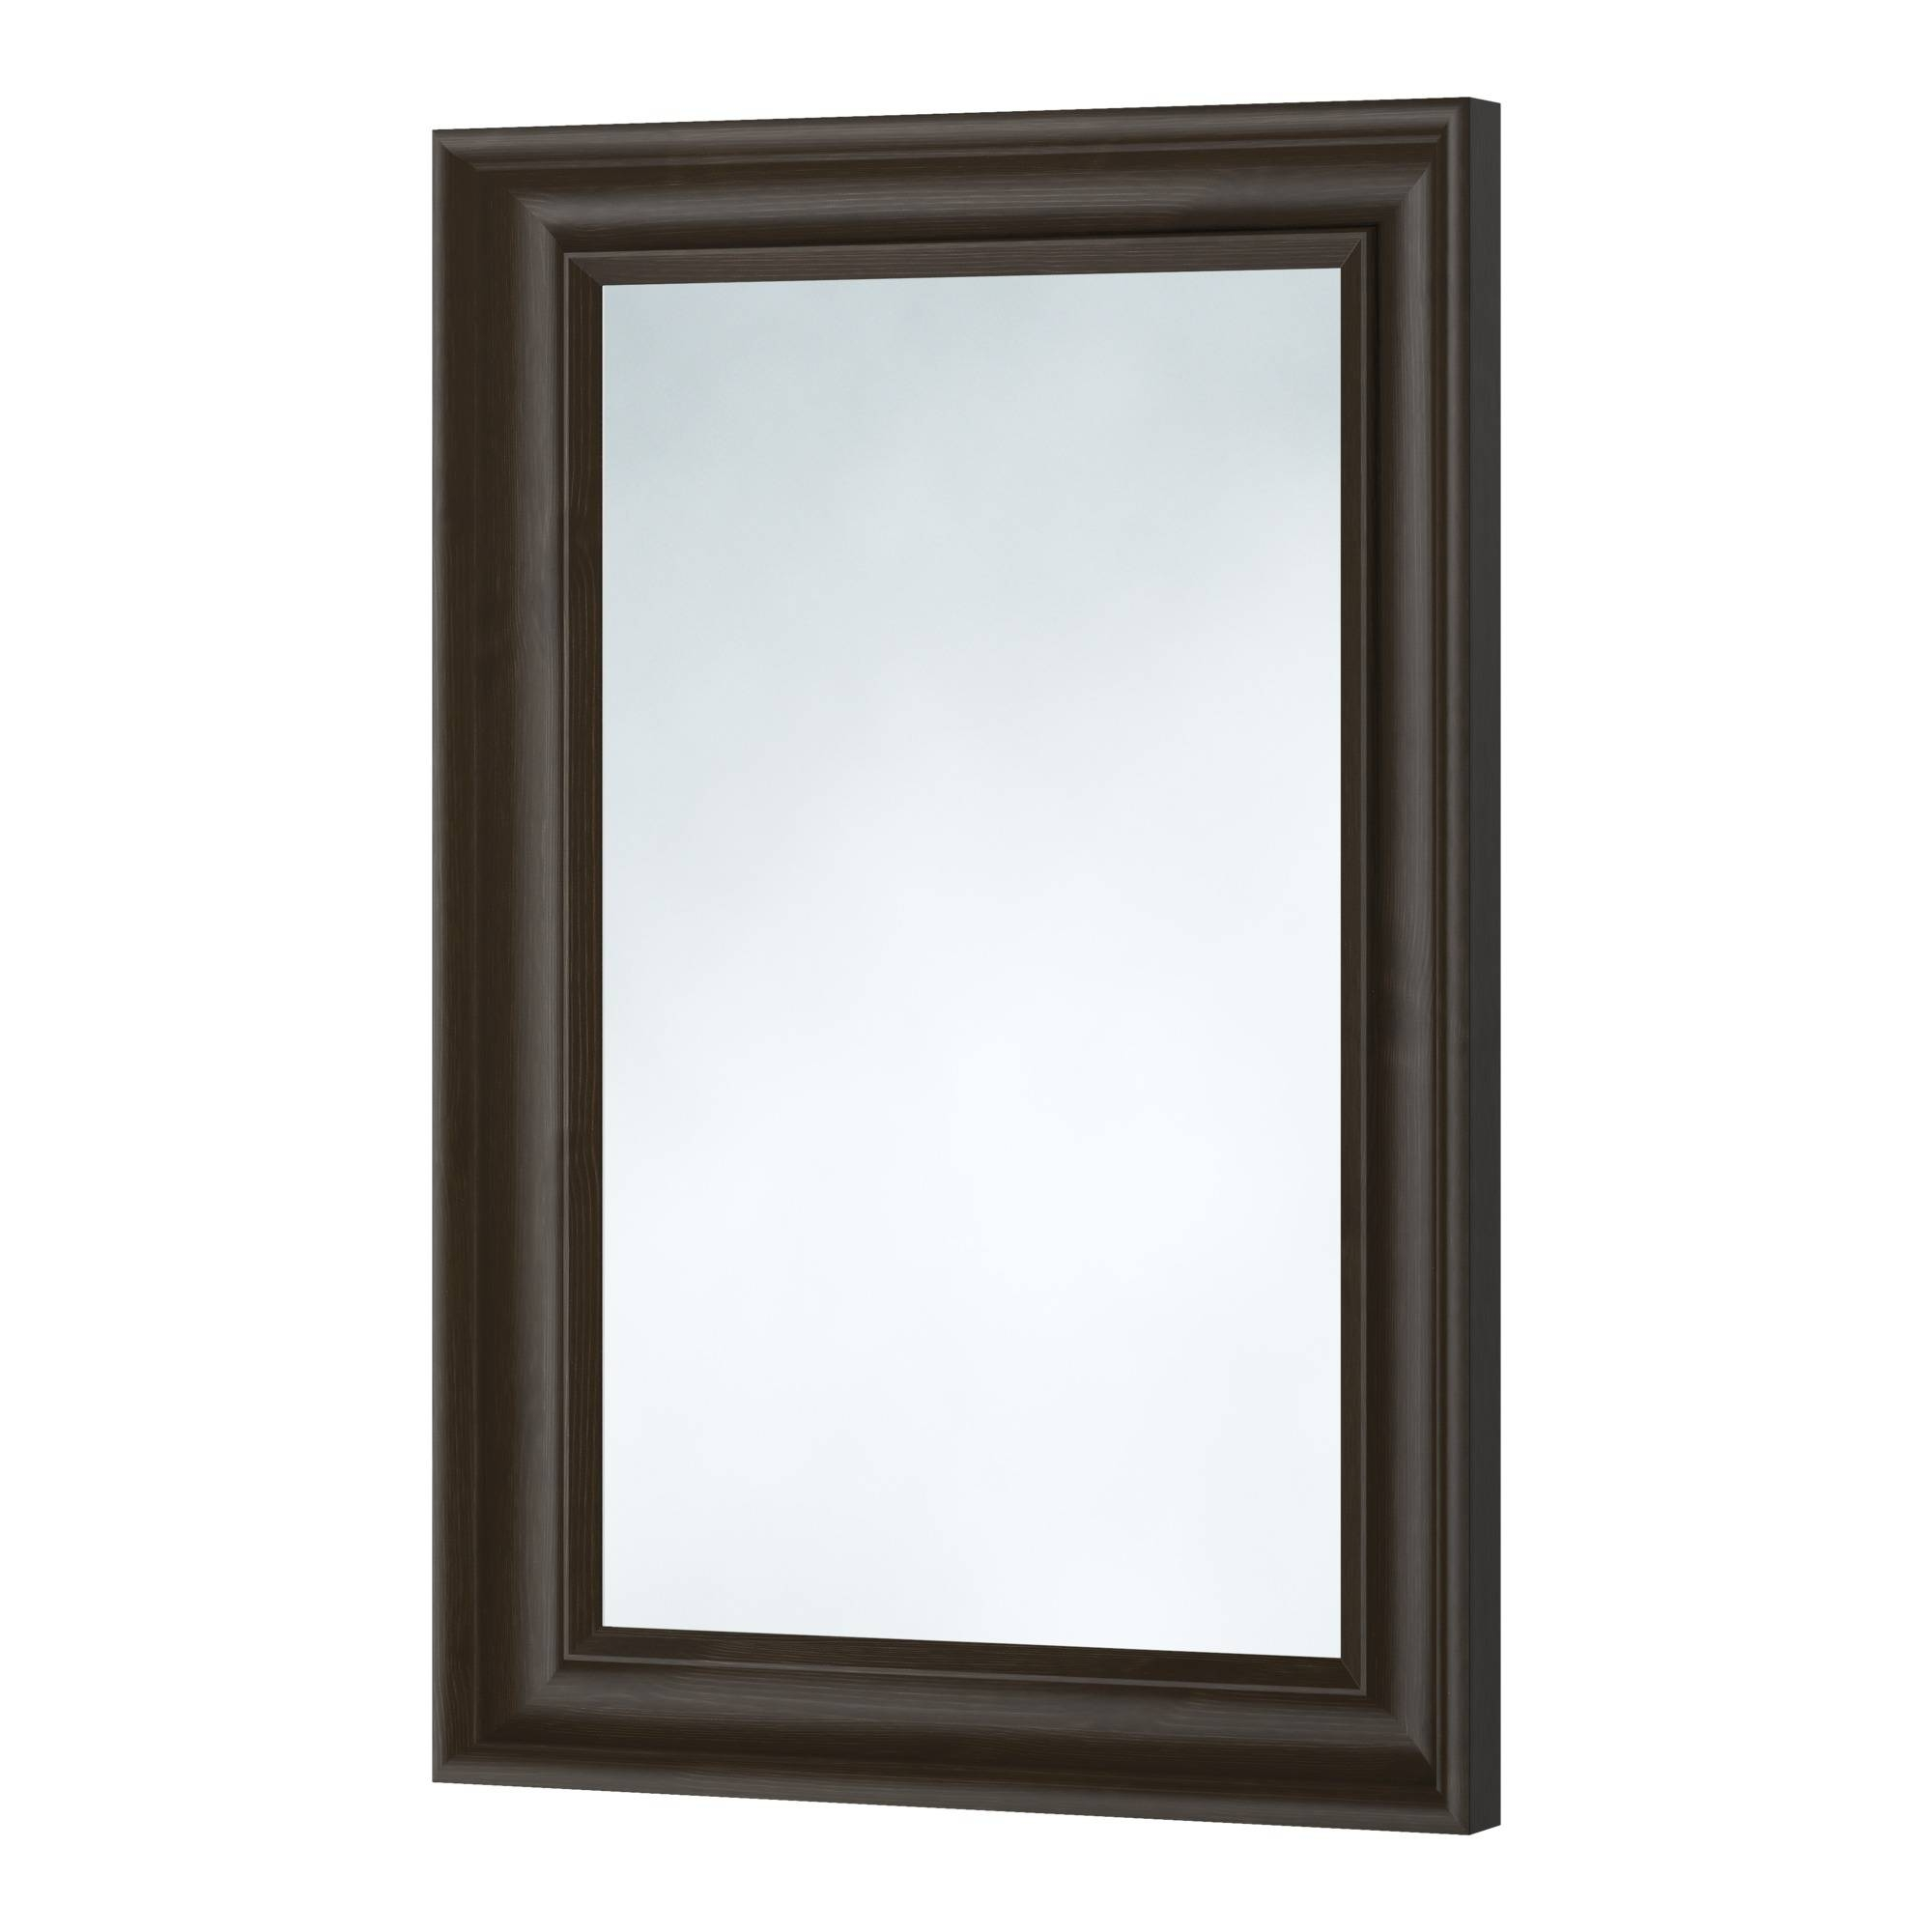 Wall Mirrors - Ikea with Long Black Wall Mirrors (Image 15 of 15)